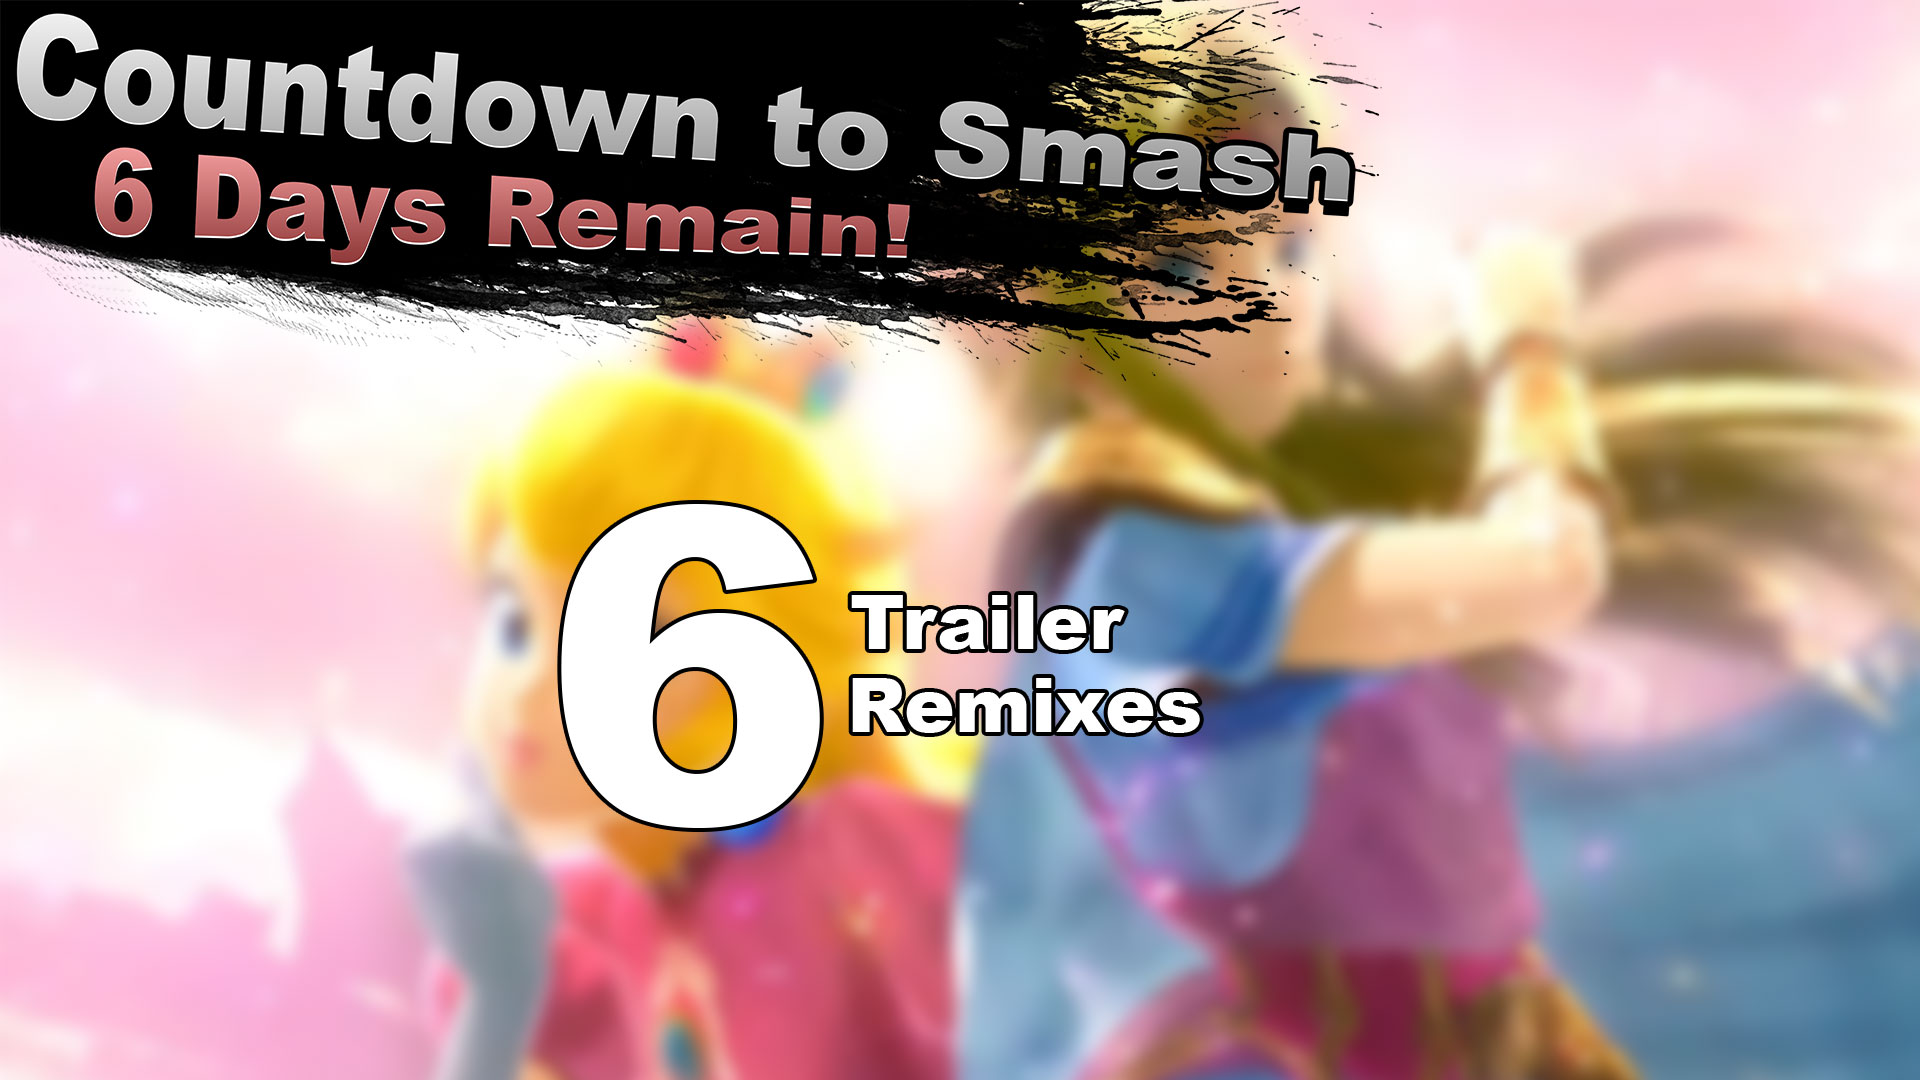 Countdown to Smash – Six trailer remixes